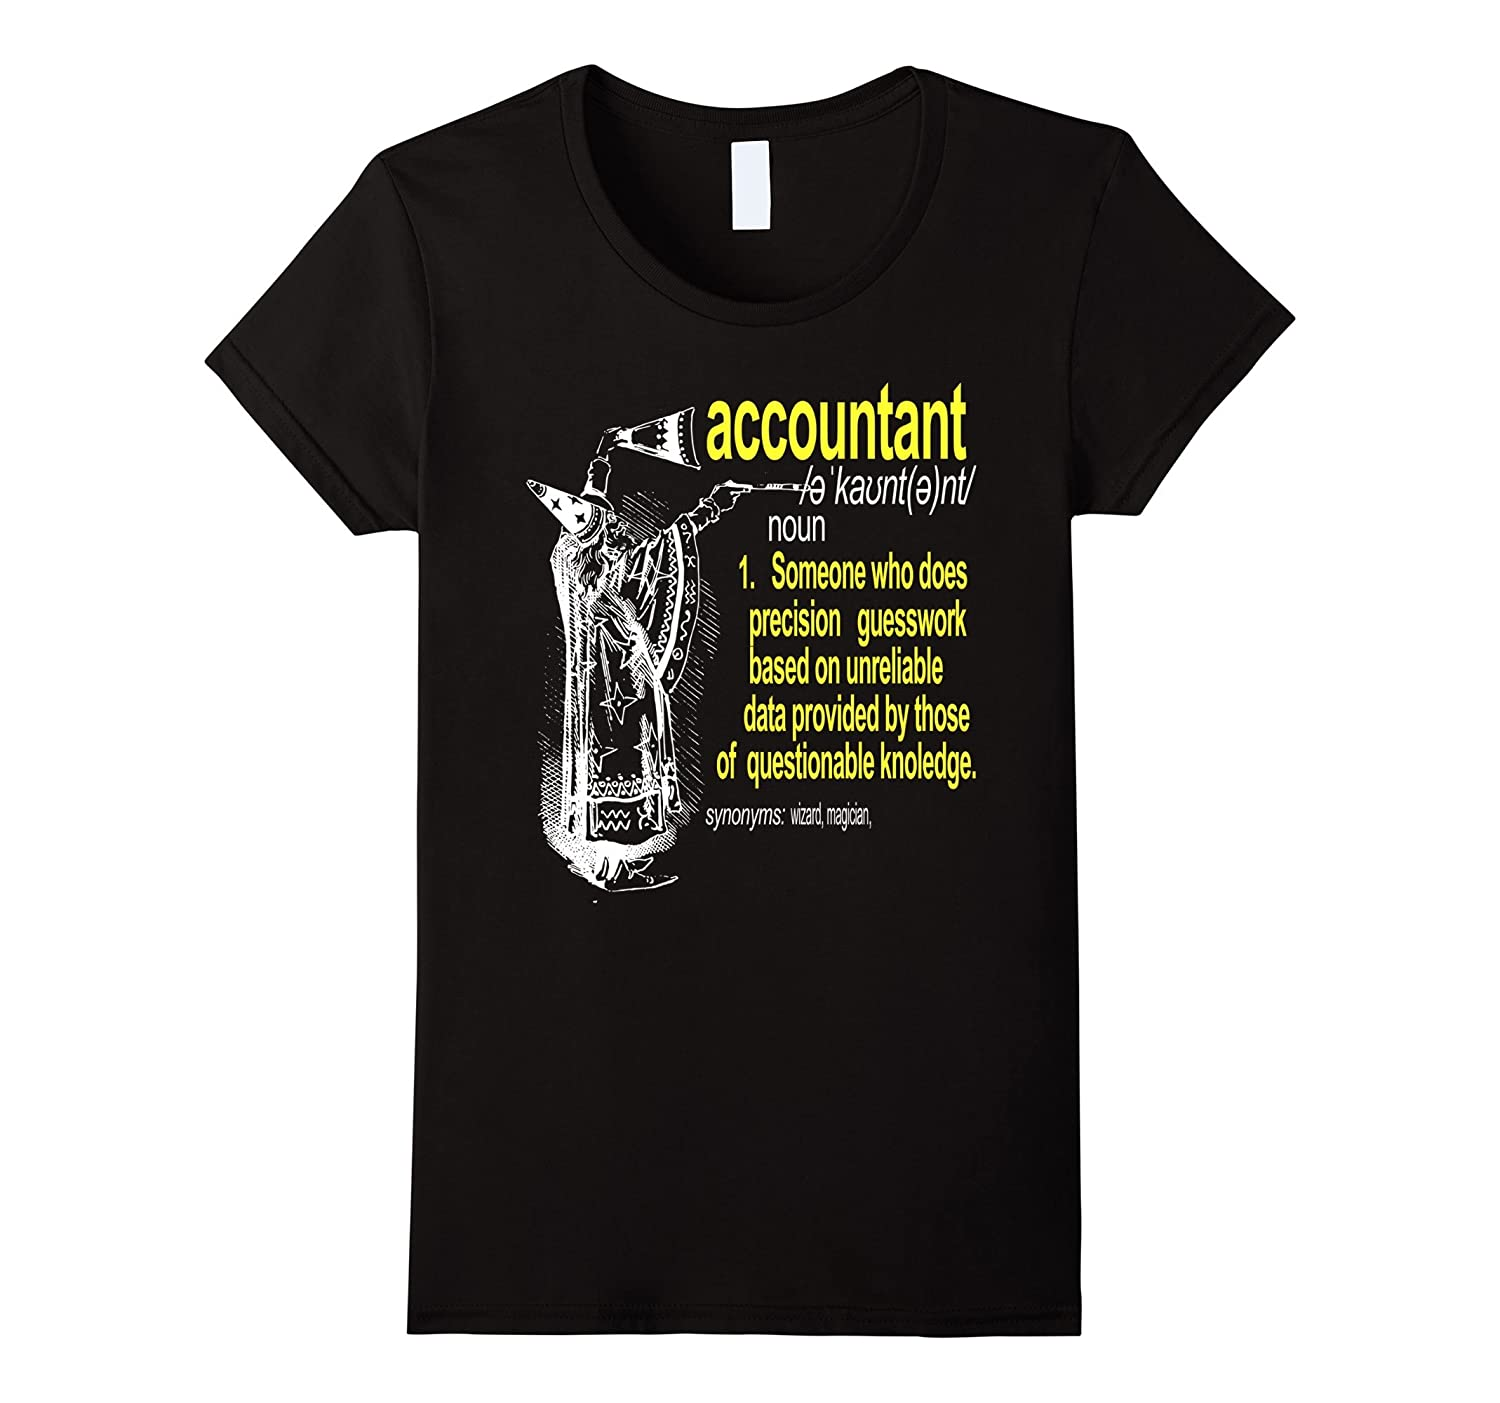 Accountant Meaning T Shirt, Accountant funny Noun Definition